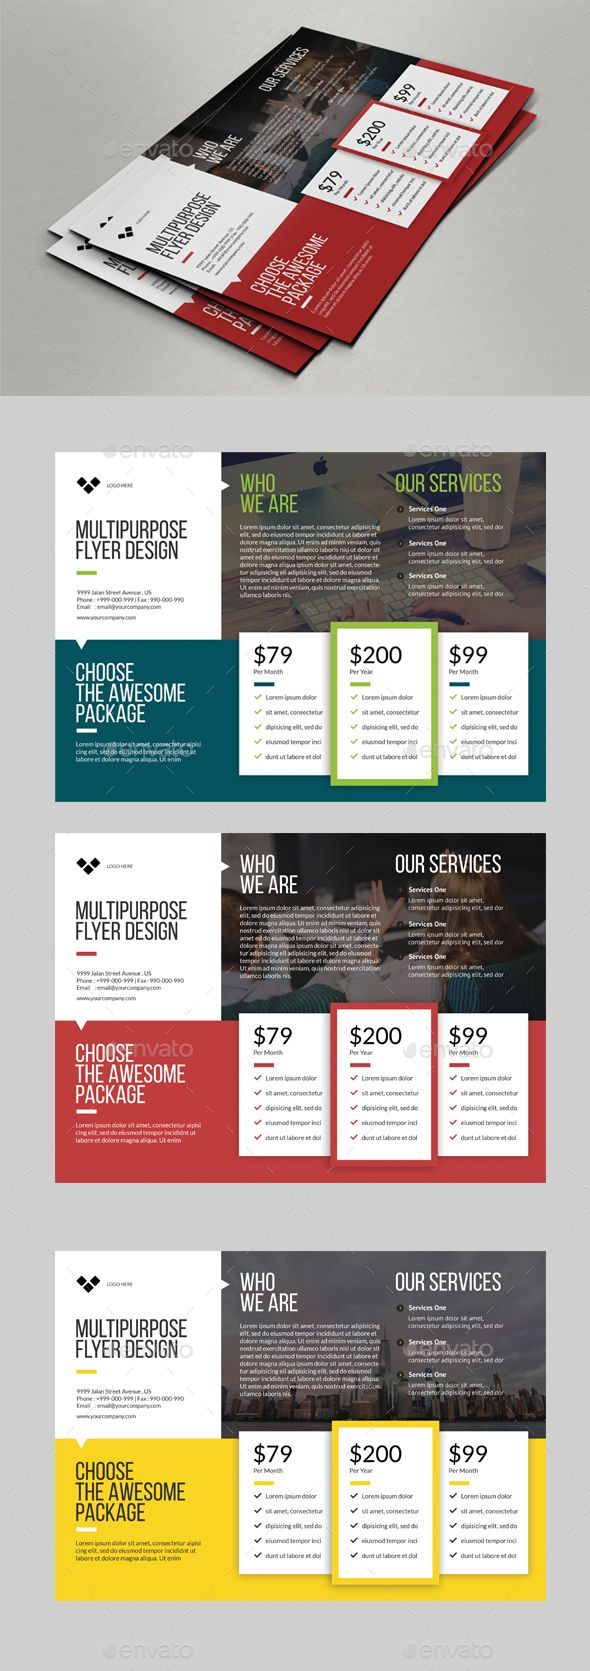 Multipurpose Flyer Price Designs — Photoshop PSD #it solution #green • Available here → https://graphicriver.net/item/multipurpose-flyer-price-designs/16328946?ref=pxcr